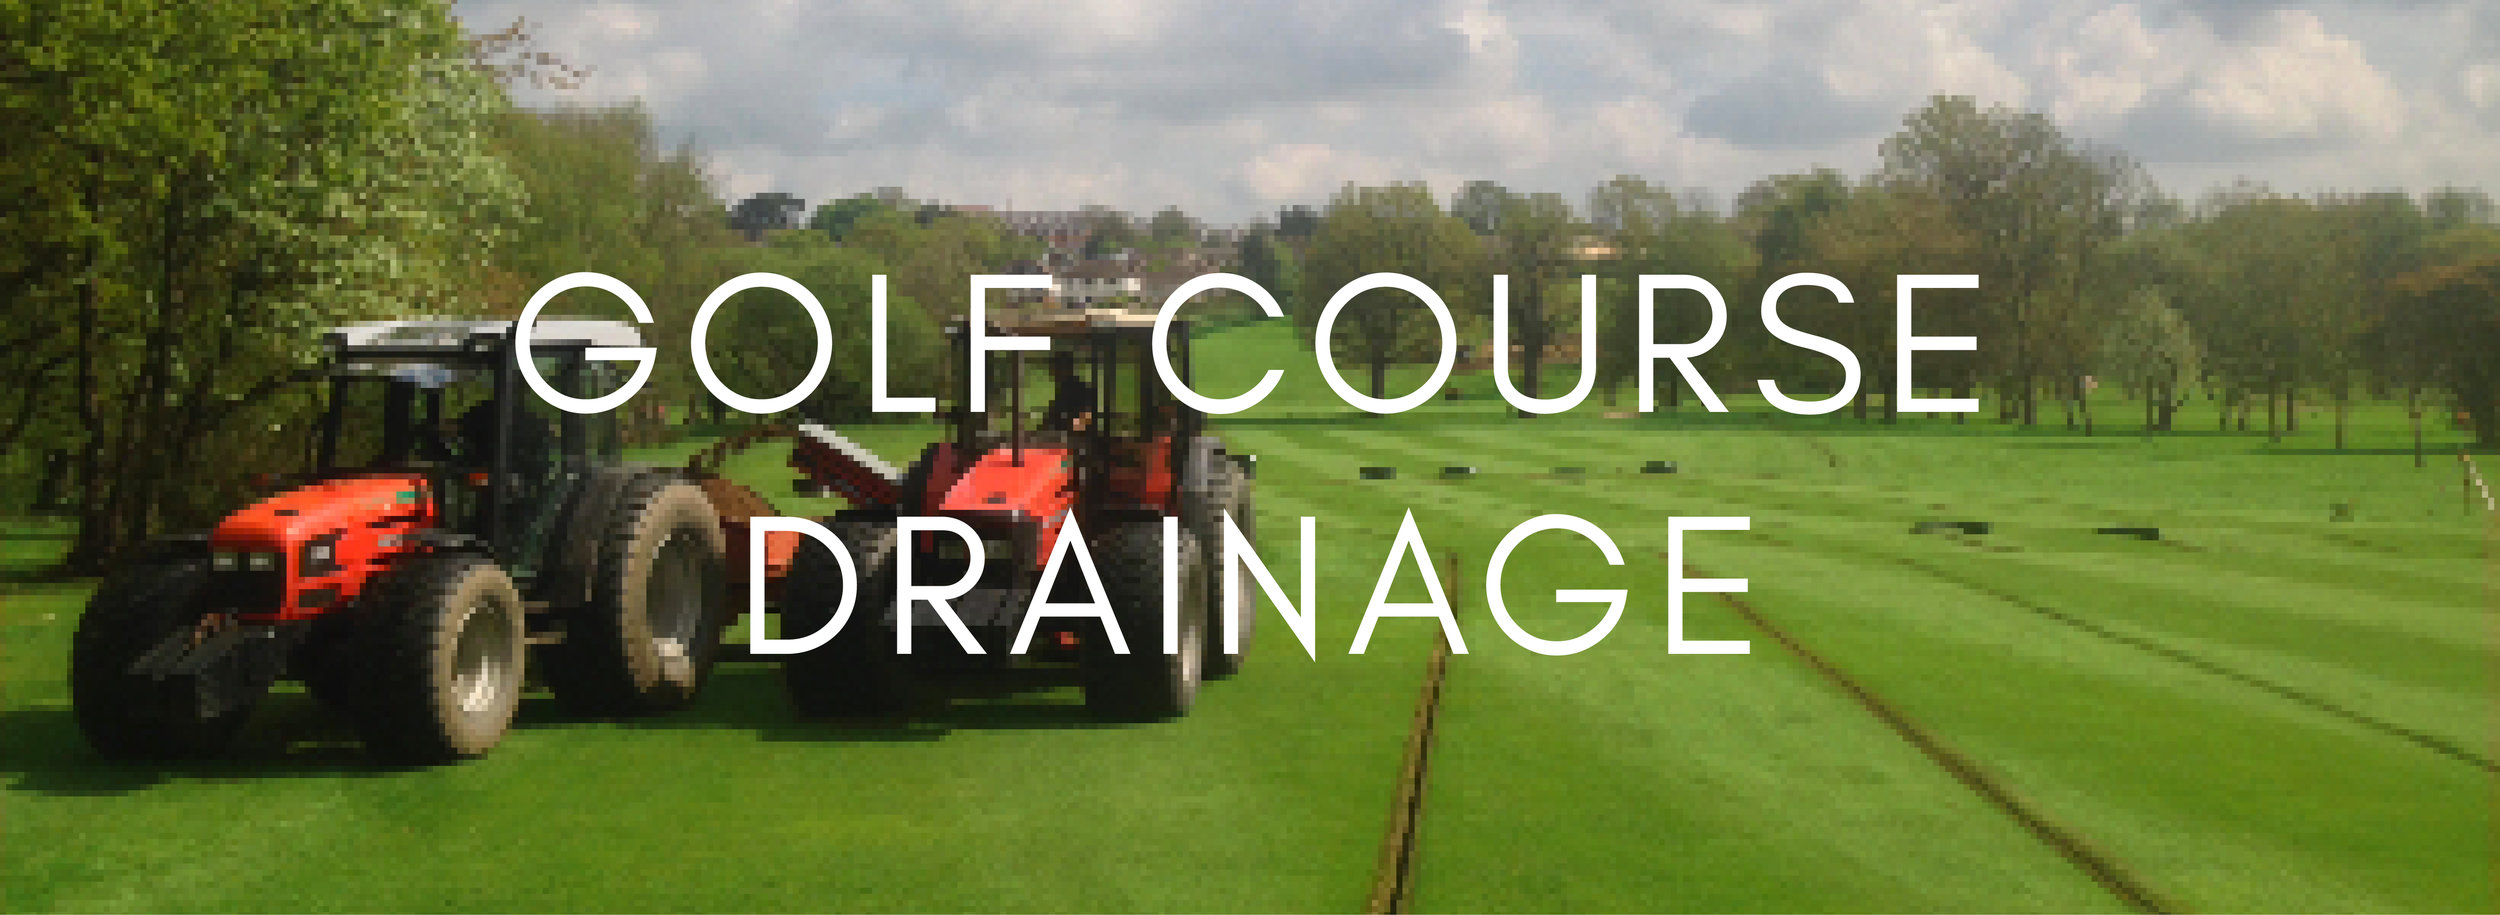 Golf Course Drainage